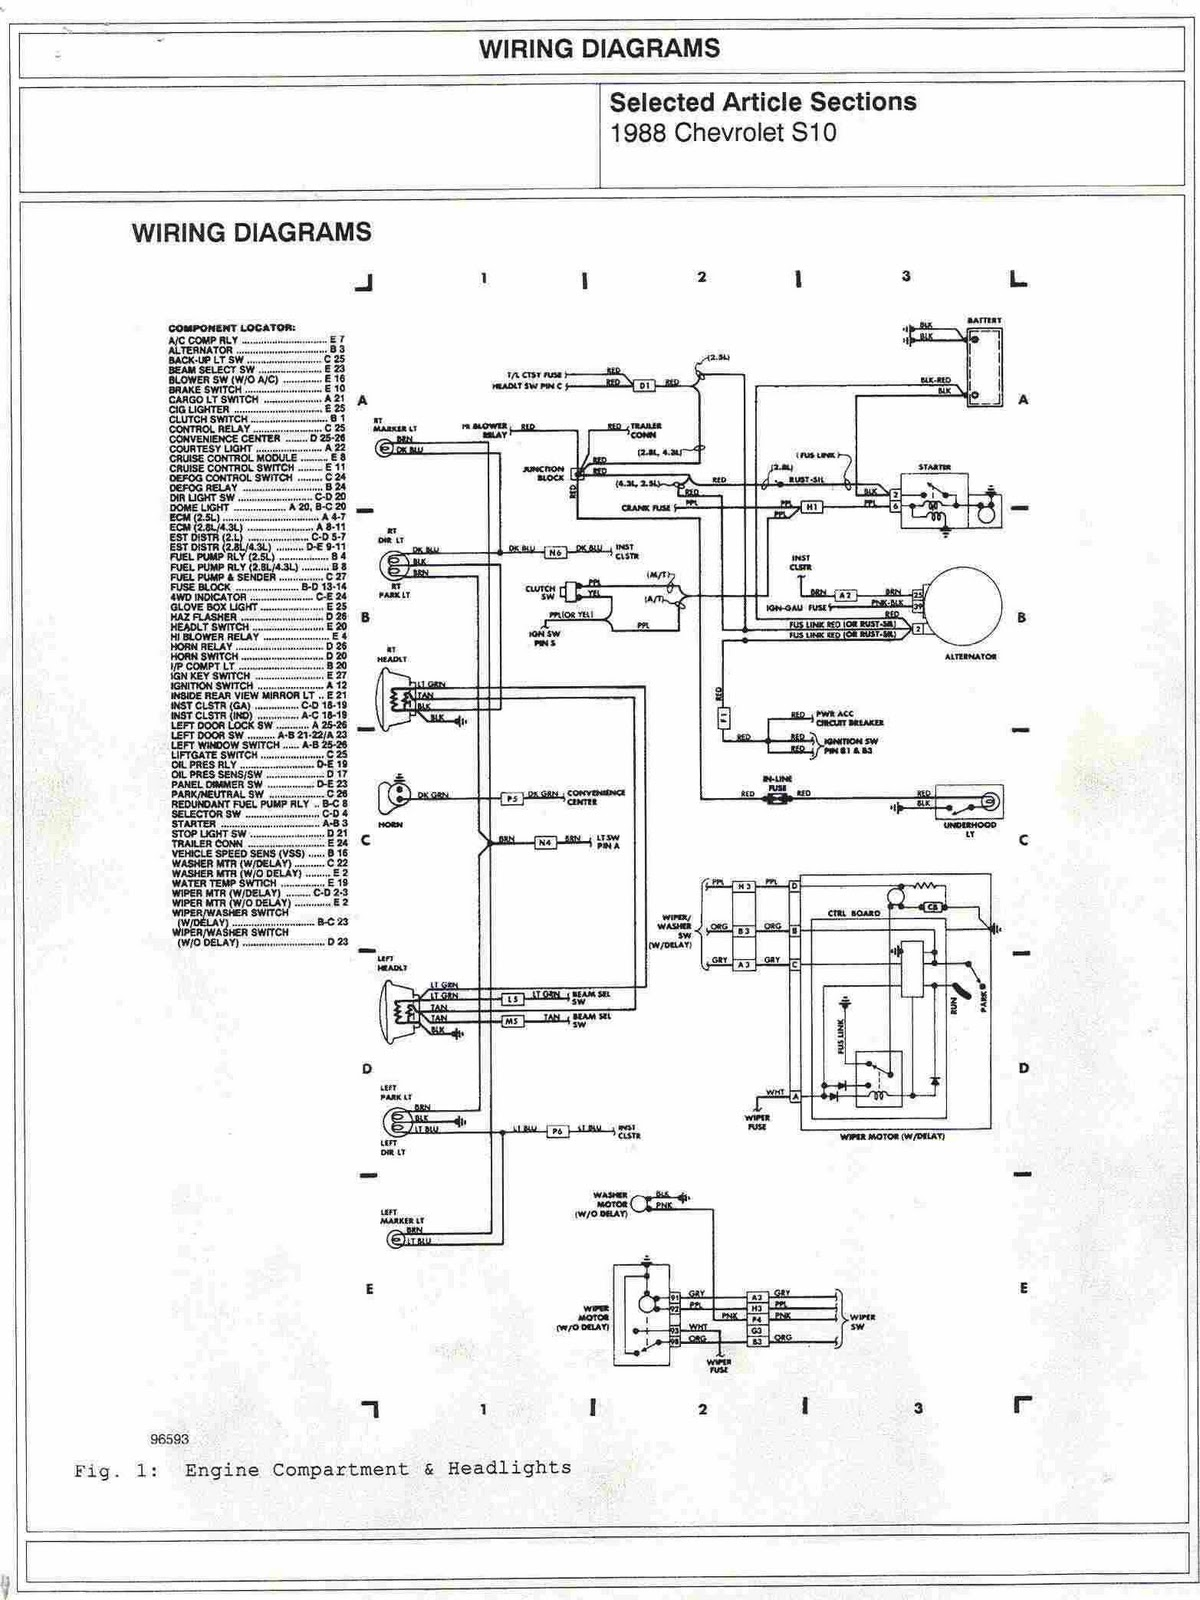 1988+Chevrolet+S10+Engine+Compartment+and+Headlights+Wiring+Diagrams 95 s10 wiring diagram 95 tahoe wiring diagram \u2022 wiring diagrams alpine iva d100 wiring diagram at gsmx.co